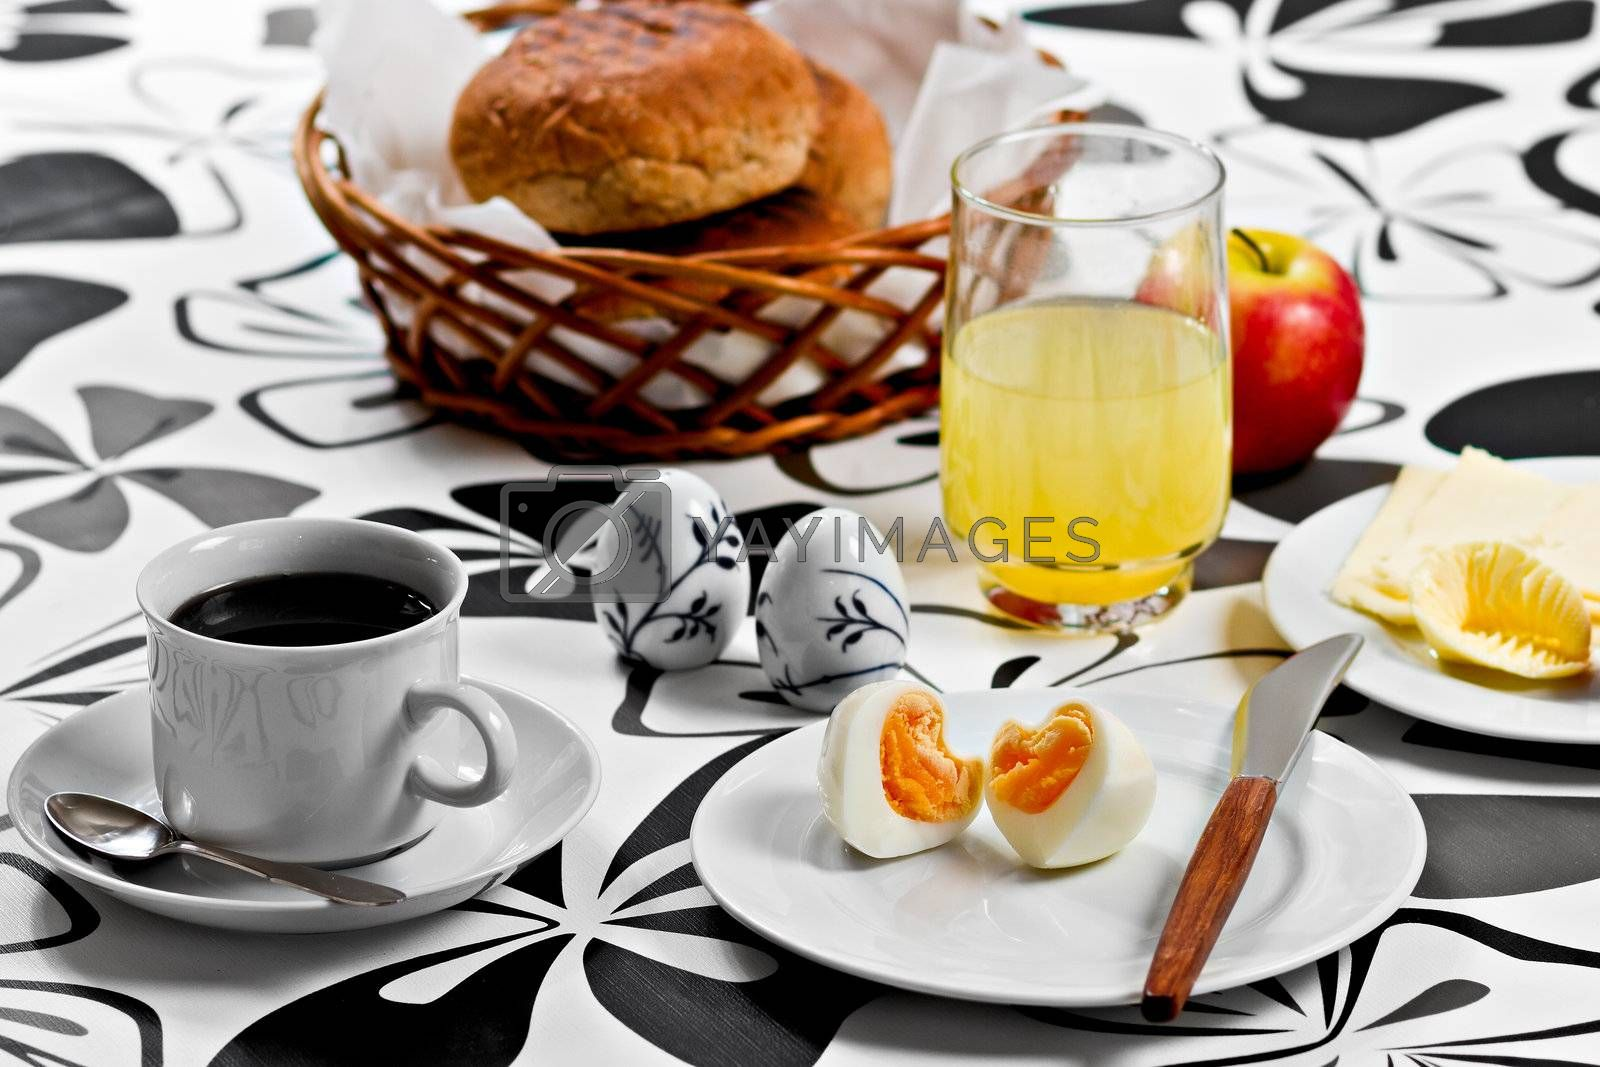 Breakfast with heart shaped egg, coffee, orange juice, bread, butter, cheese and an apple